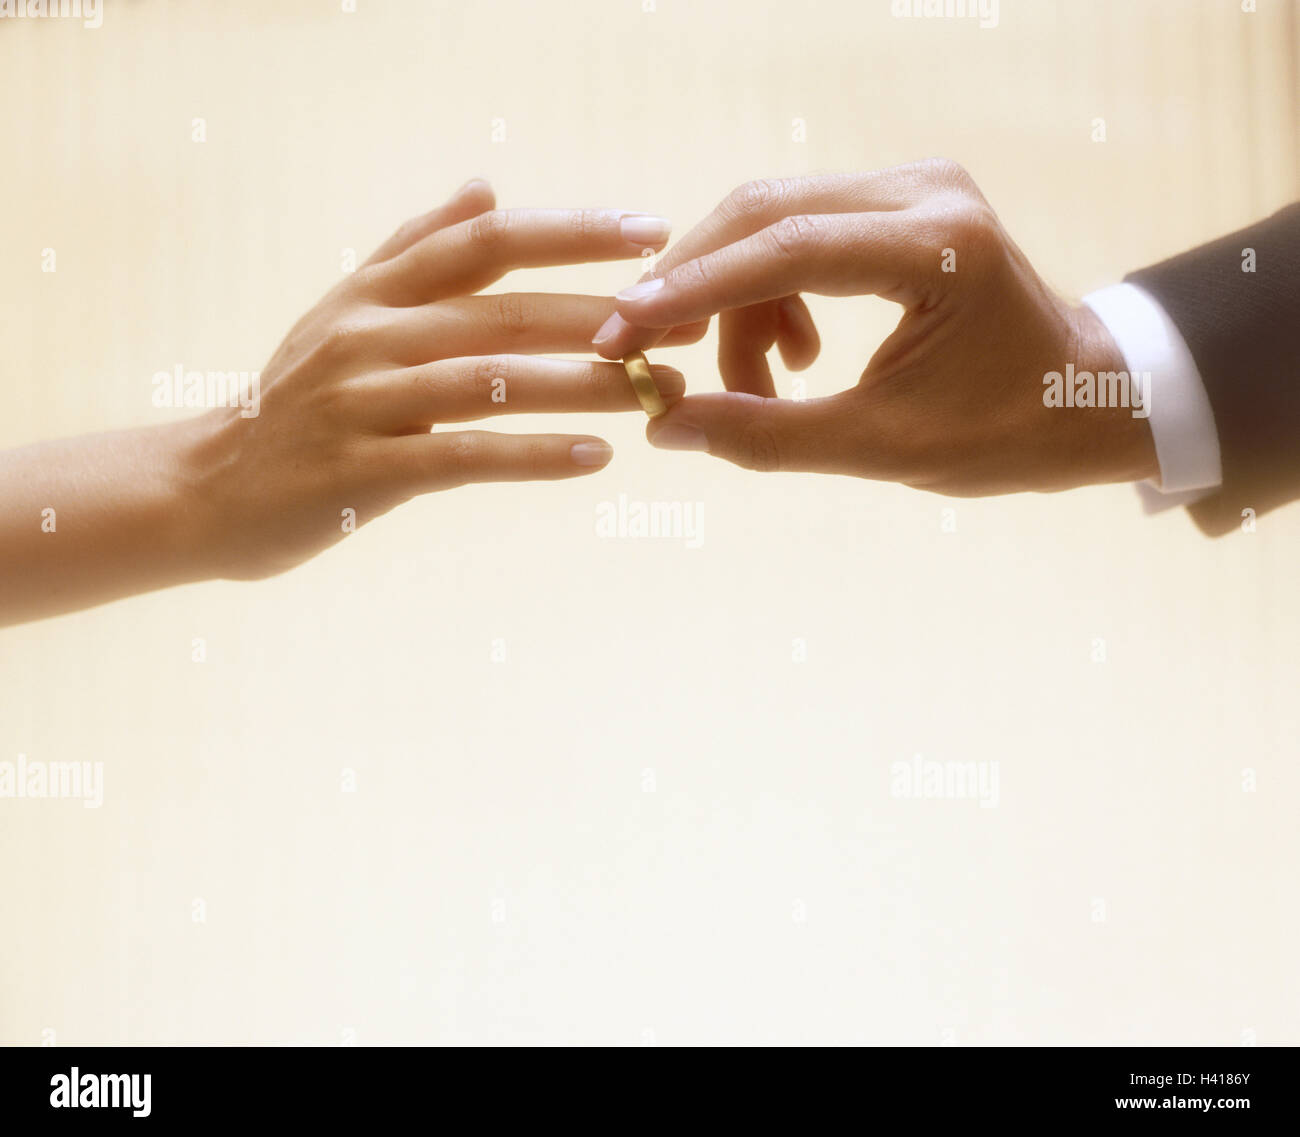 Bride and groom, detail, hands, ring, infect, women's hand, man's hand, bride, bridegroom, wedding, wedding, - Stock Image